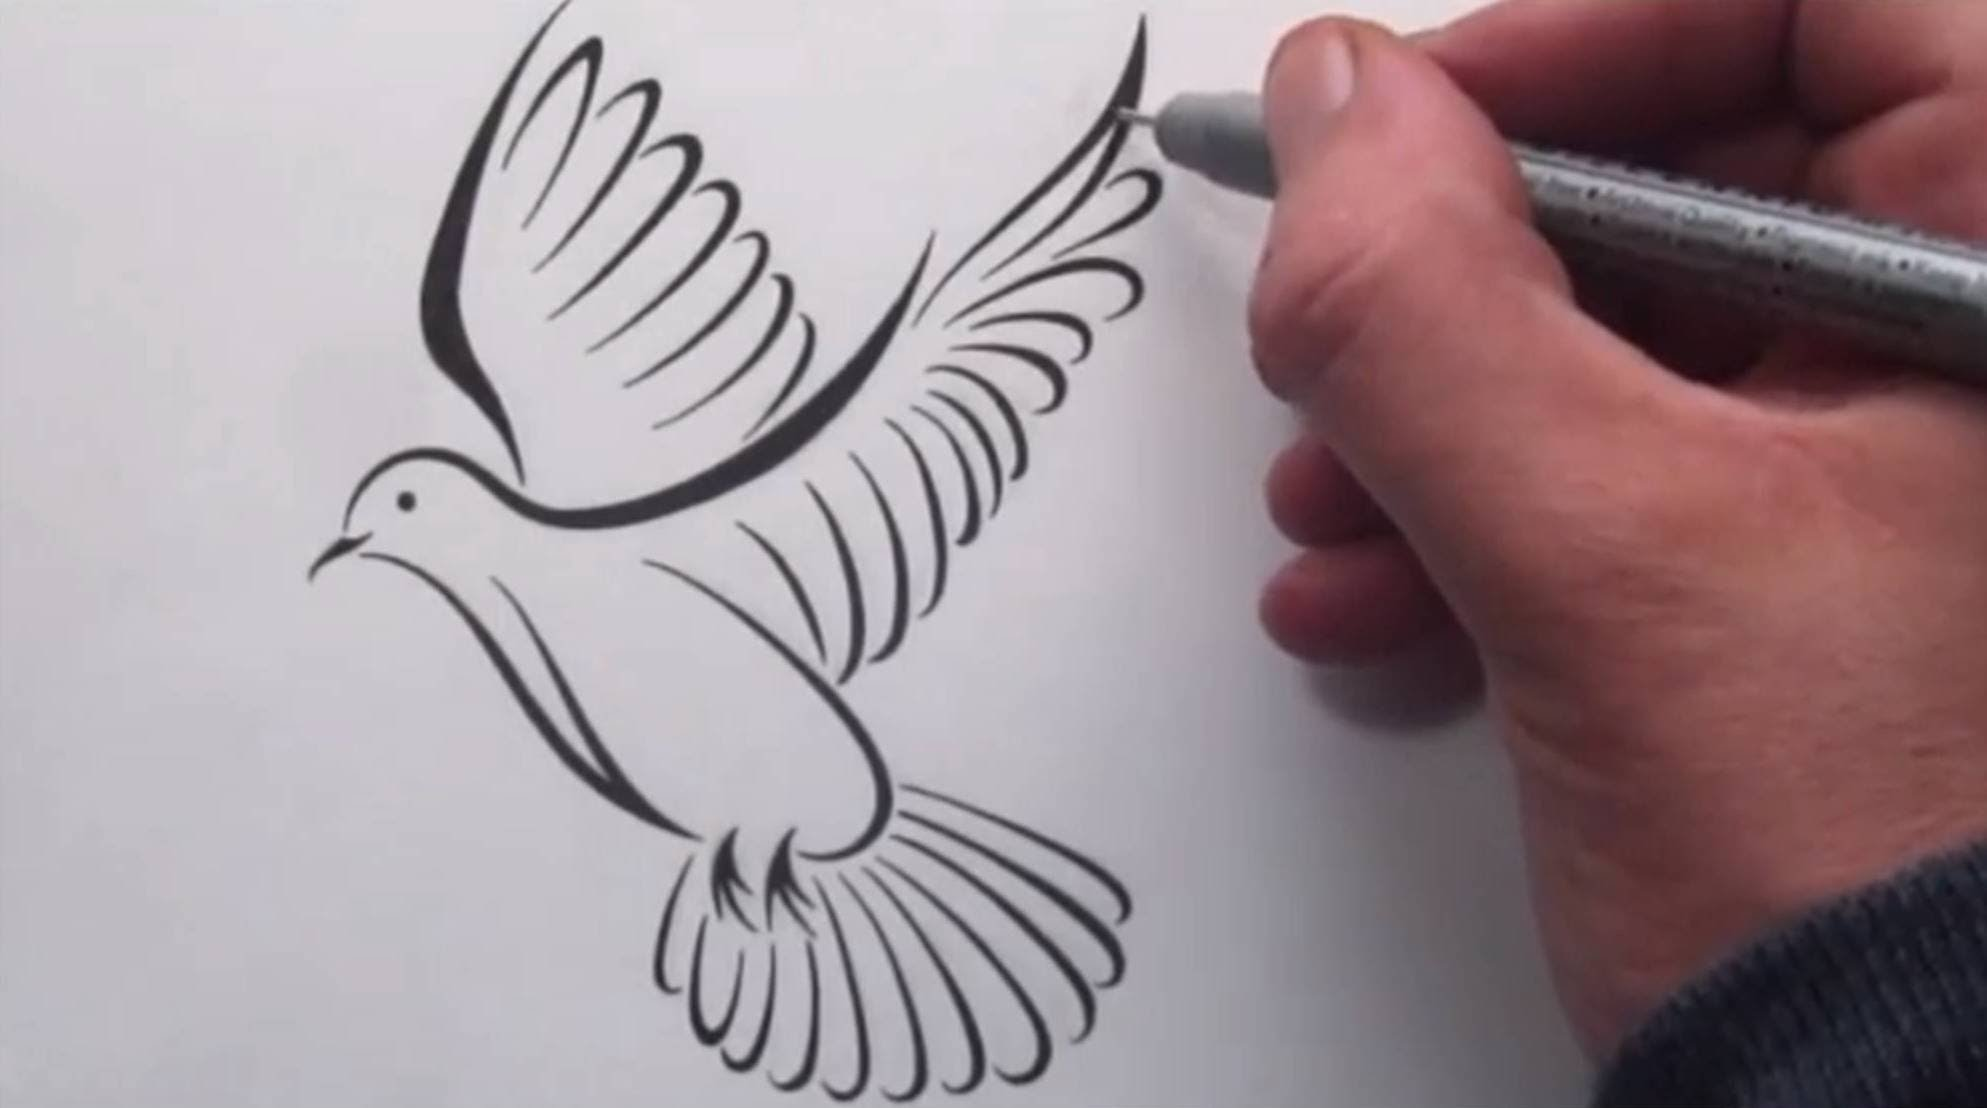 What does a black dove symbolize images symbol and sign ideas 63 simple dove tattoos meaning and ideas black tribal dove tattoo sample buycottarizona biocorpaavc